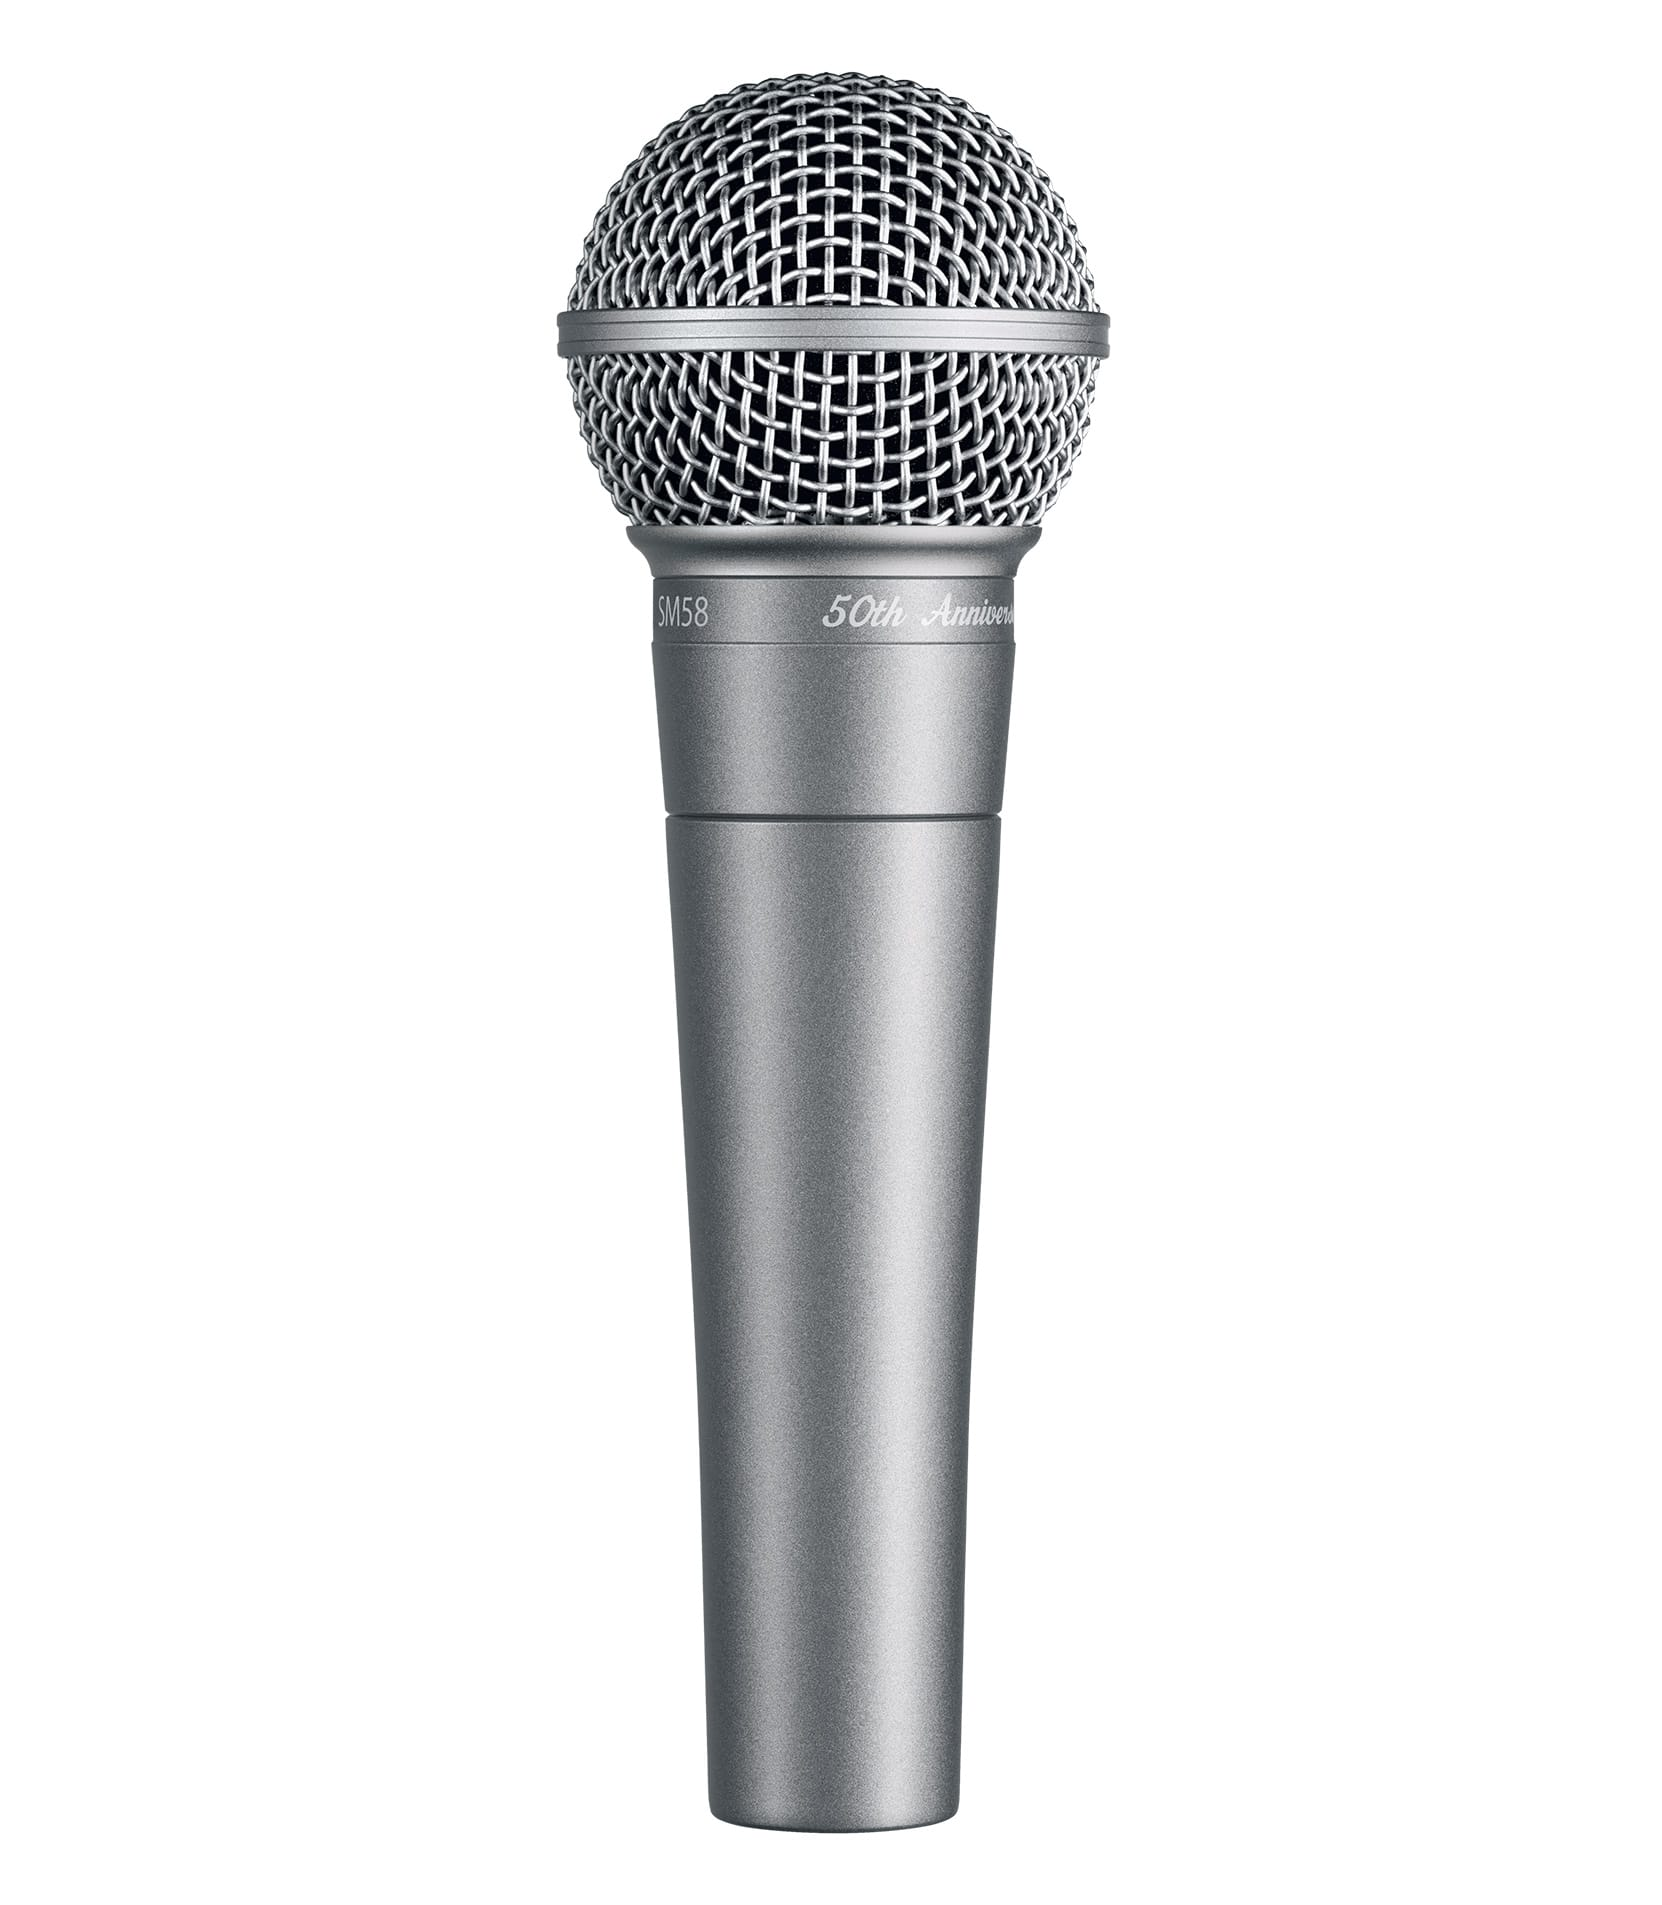 SM58 50A 50th Anniversary Edition microphone